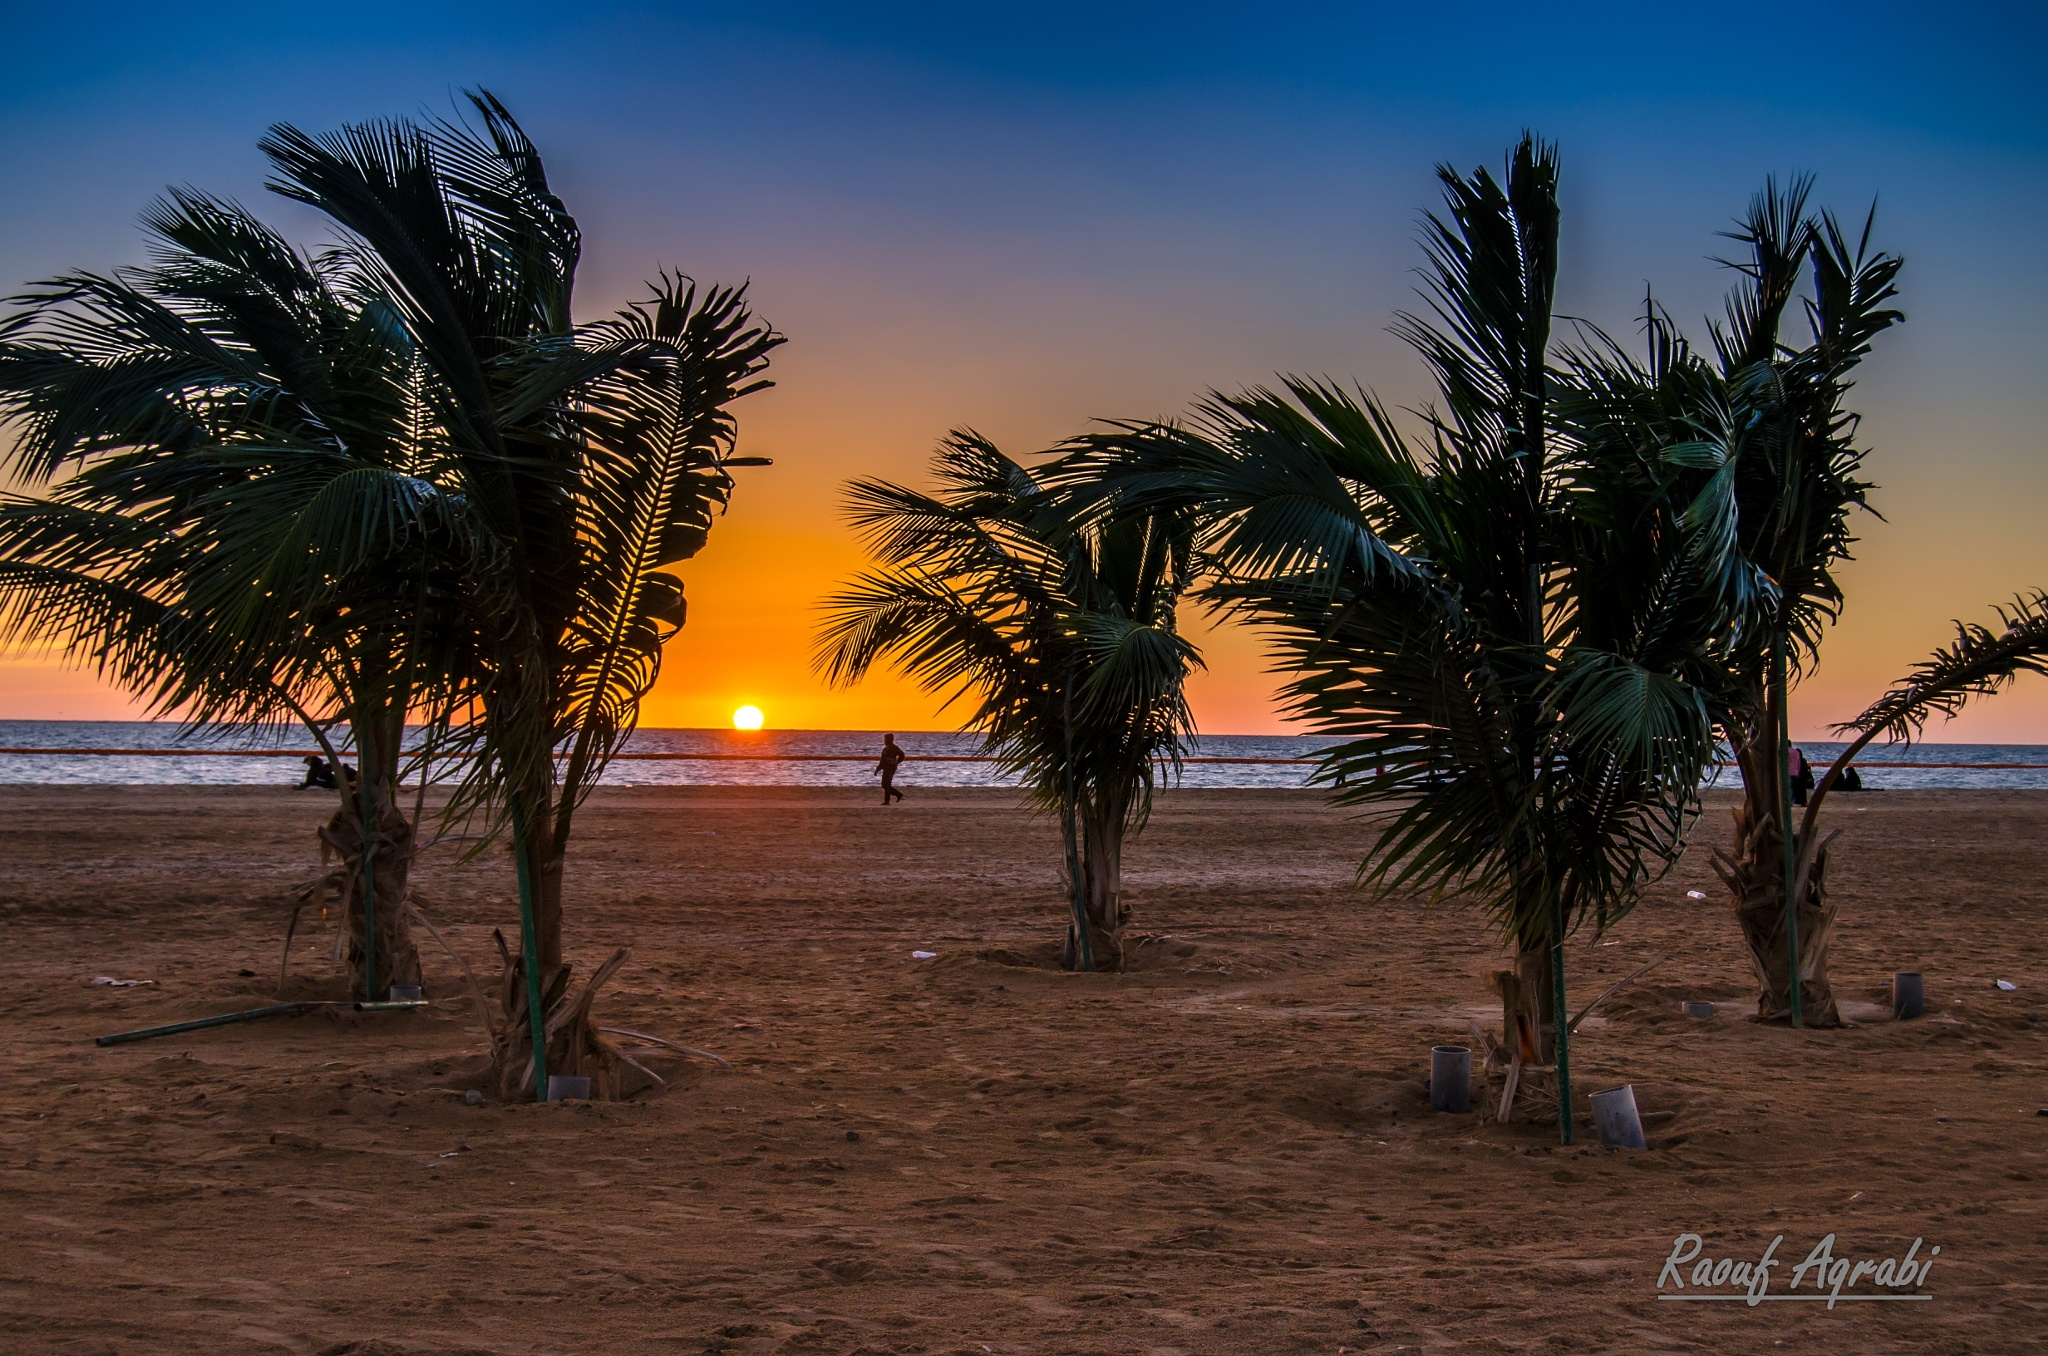 palms, beach and sunset  by Raouf Aqrabi